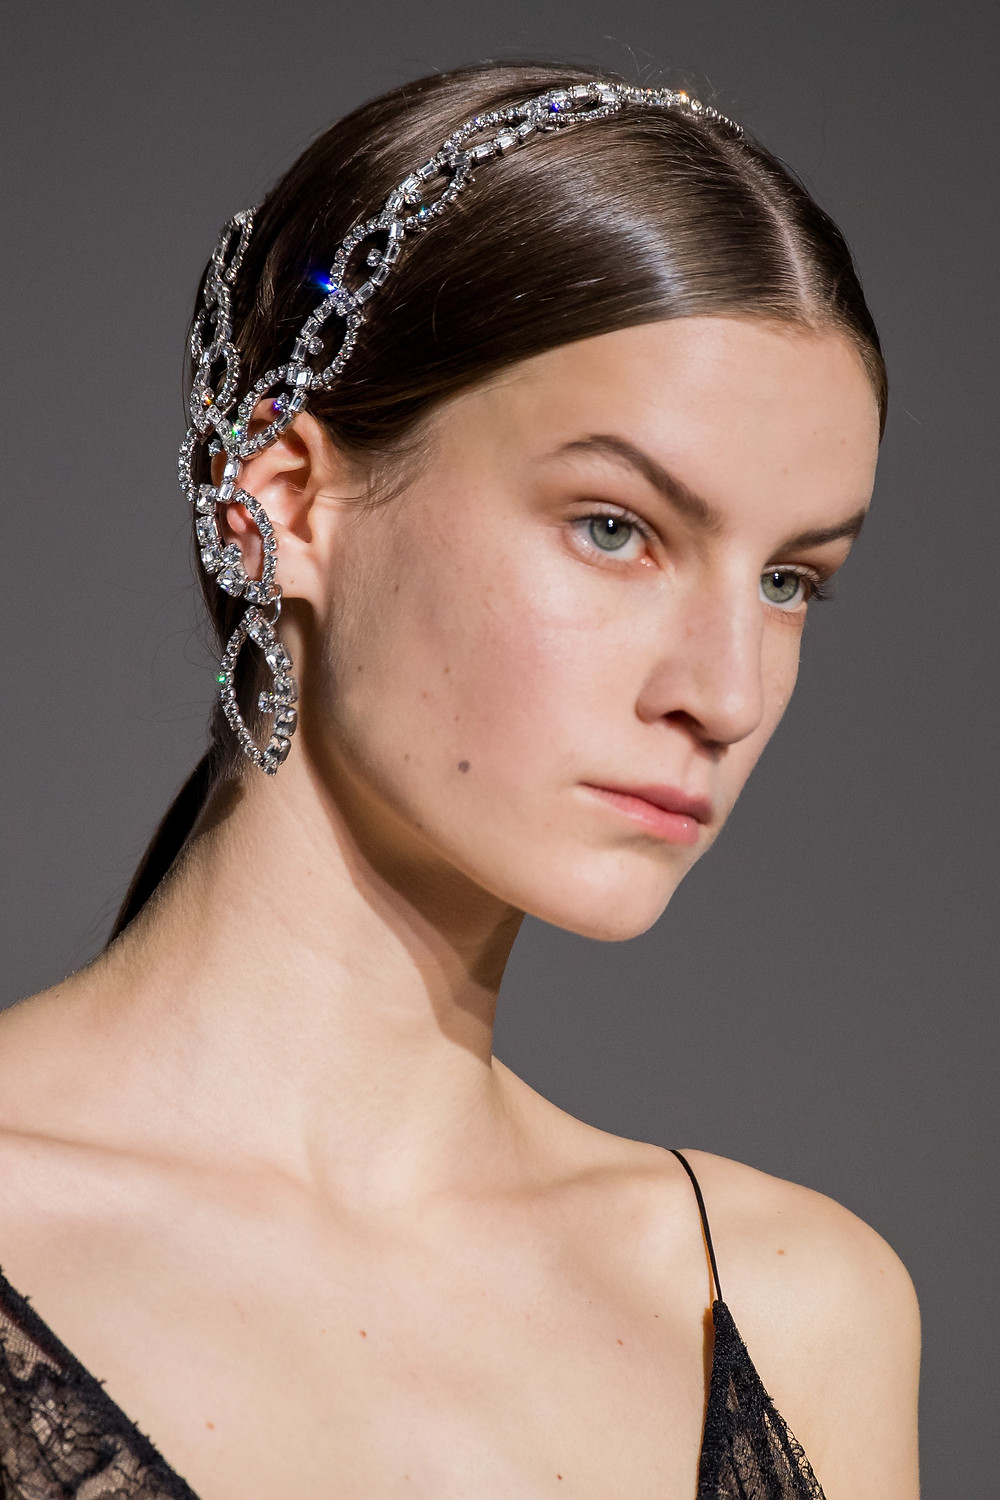 Givenchy Spring 2019 Couture Collection head jewellery